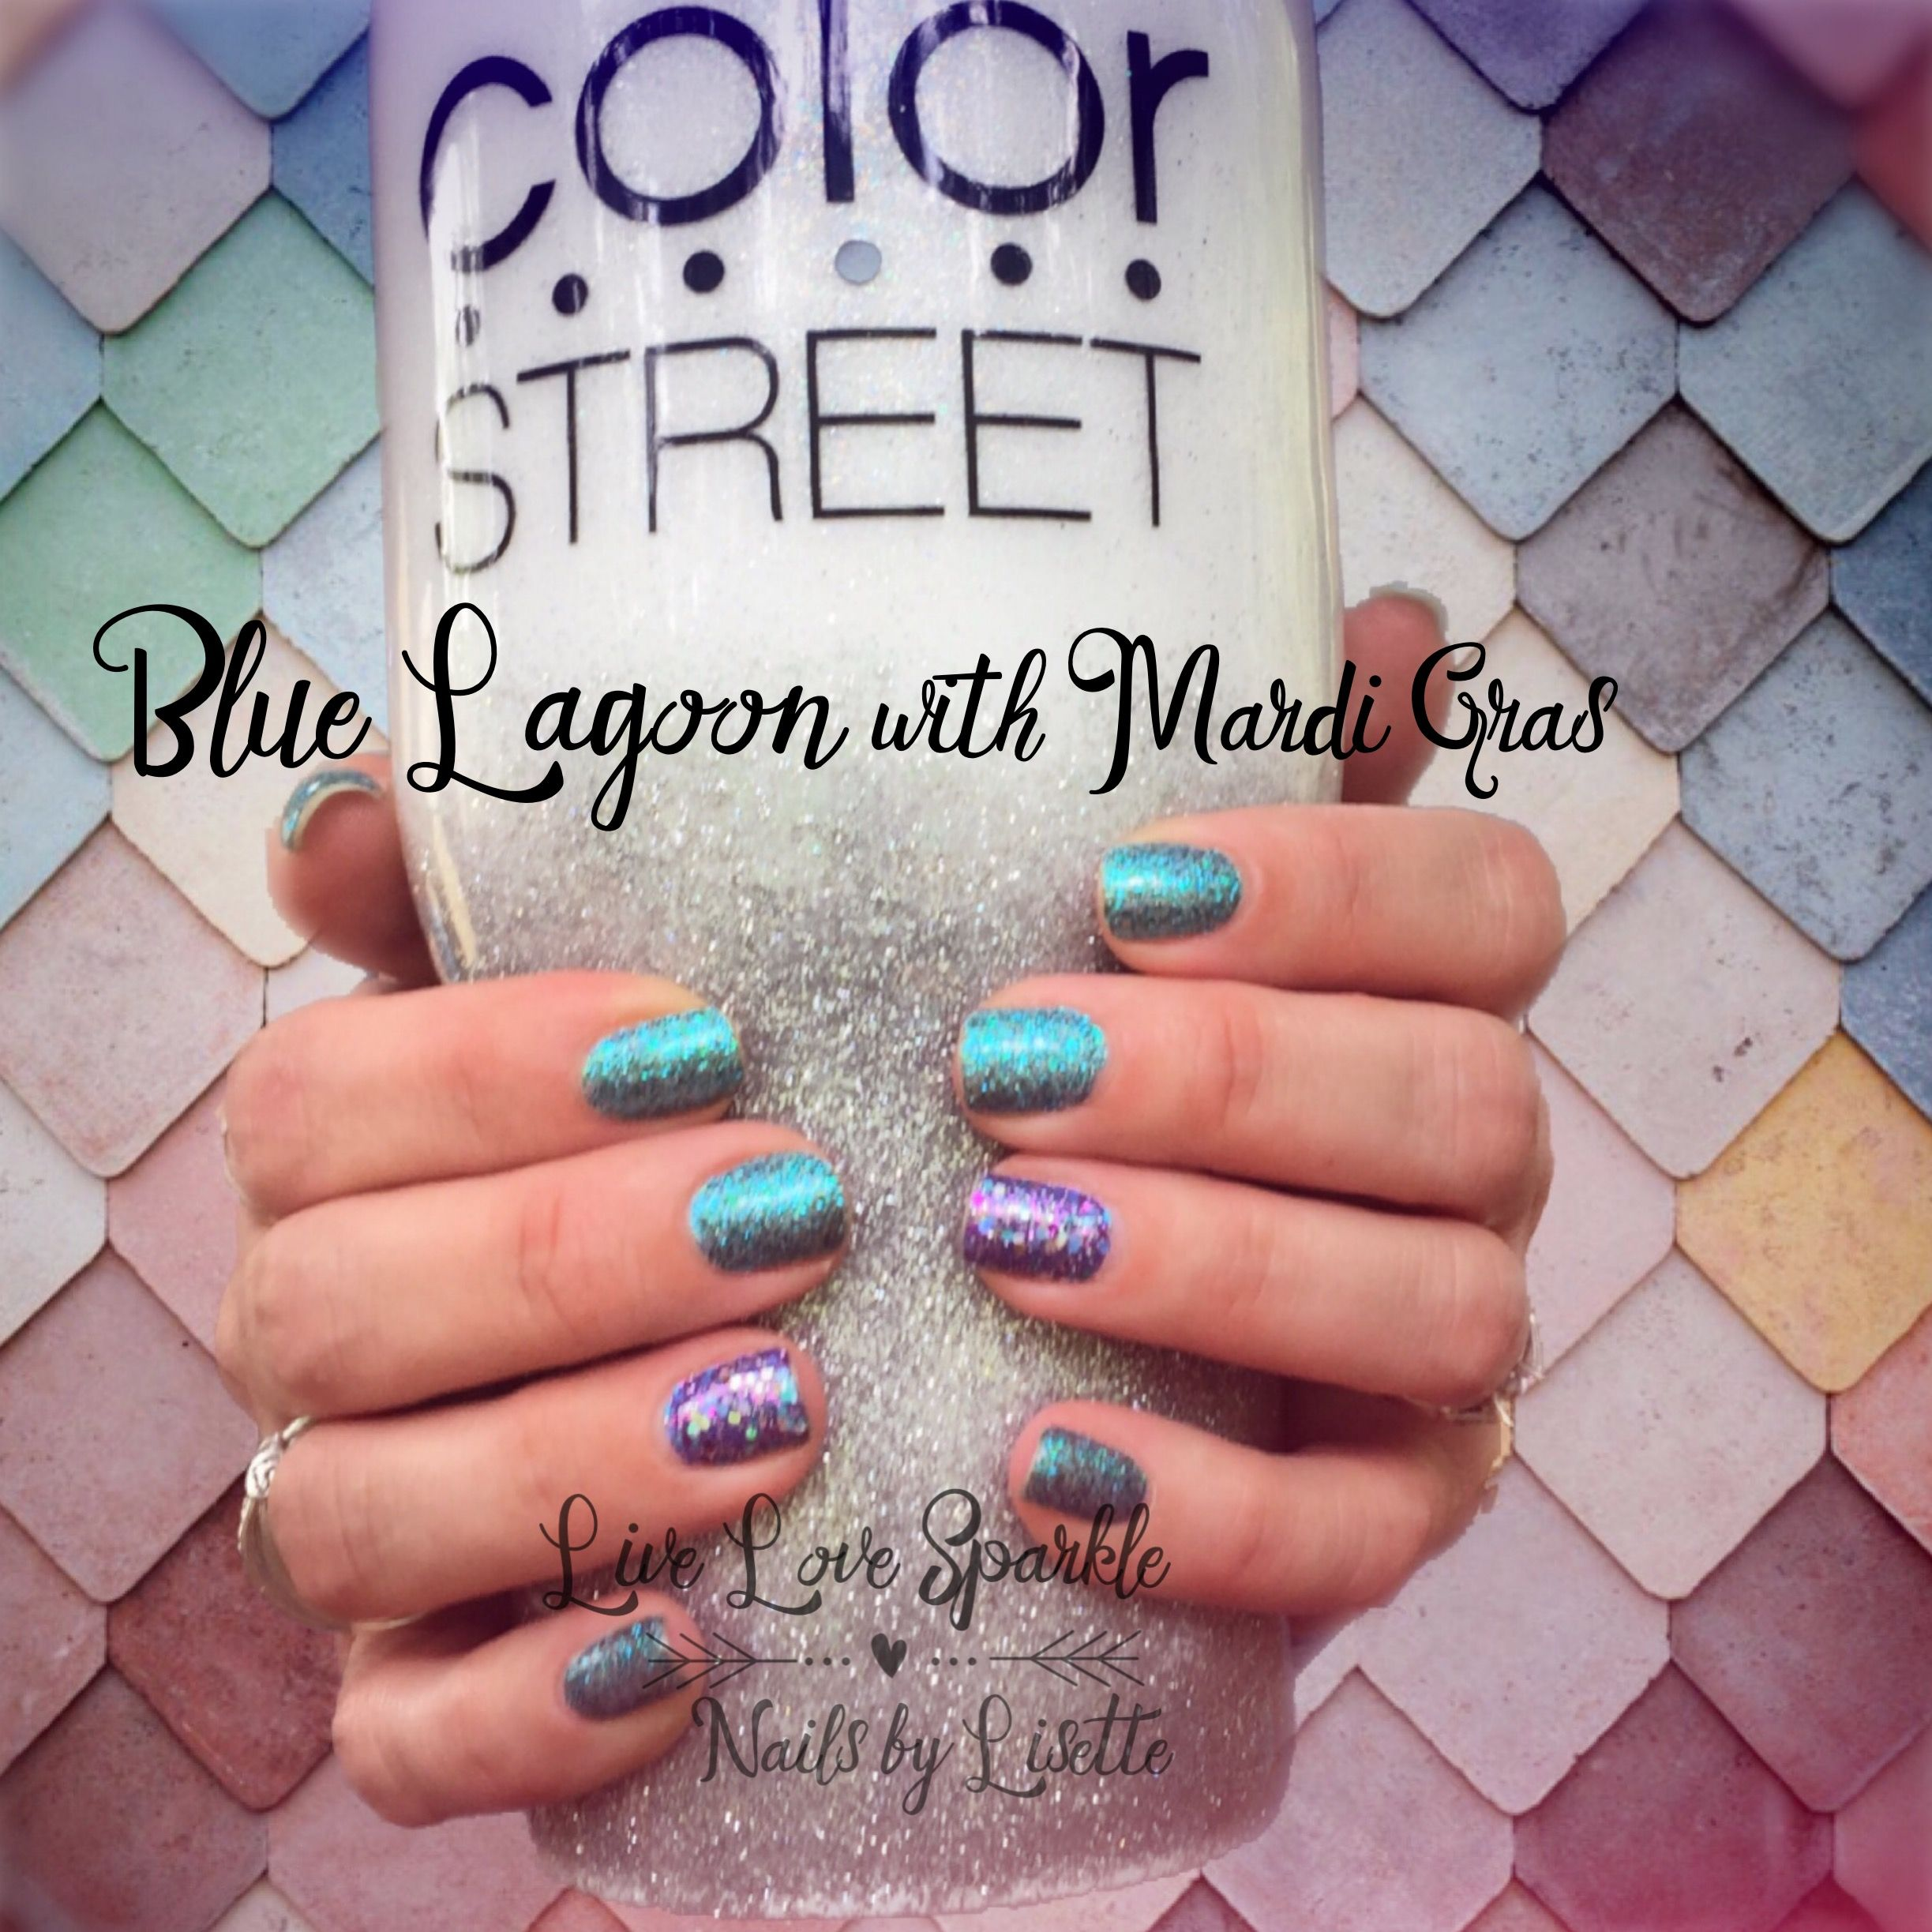 Blue Lagoon With Mardi Gras Accent Is Gorgeous Color Street Nails Nail Candy Get Nails